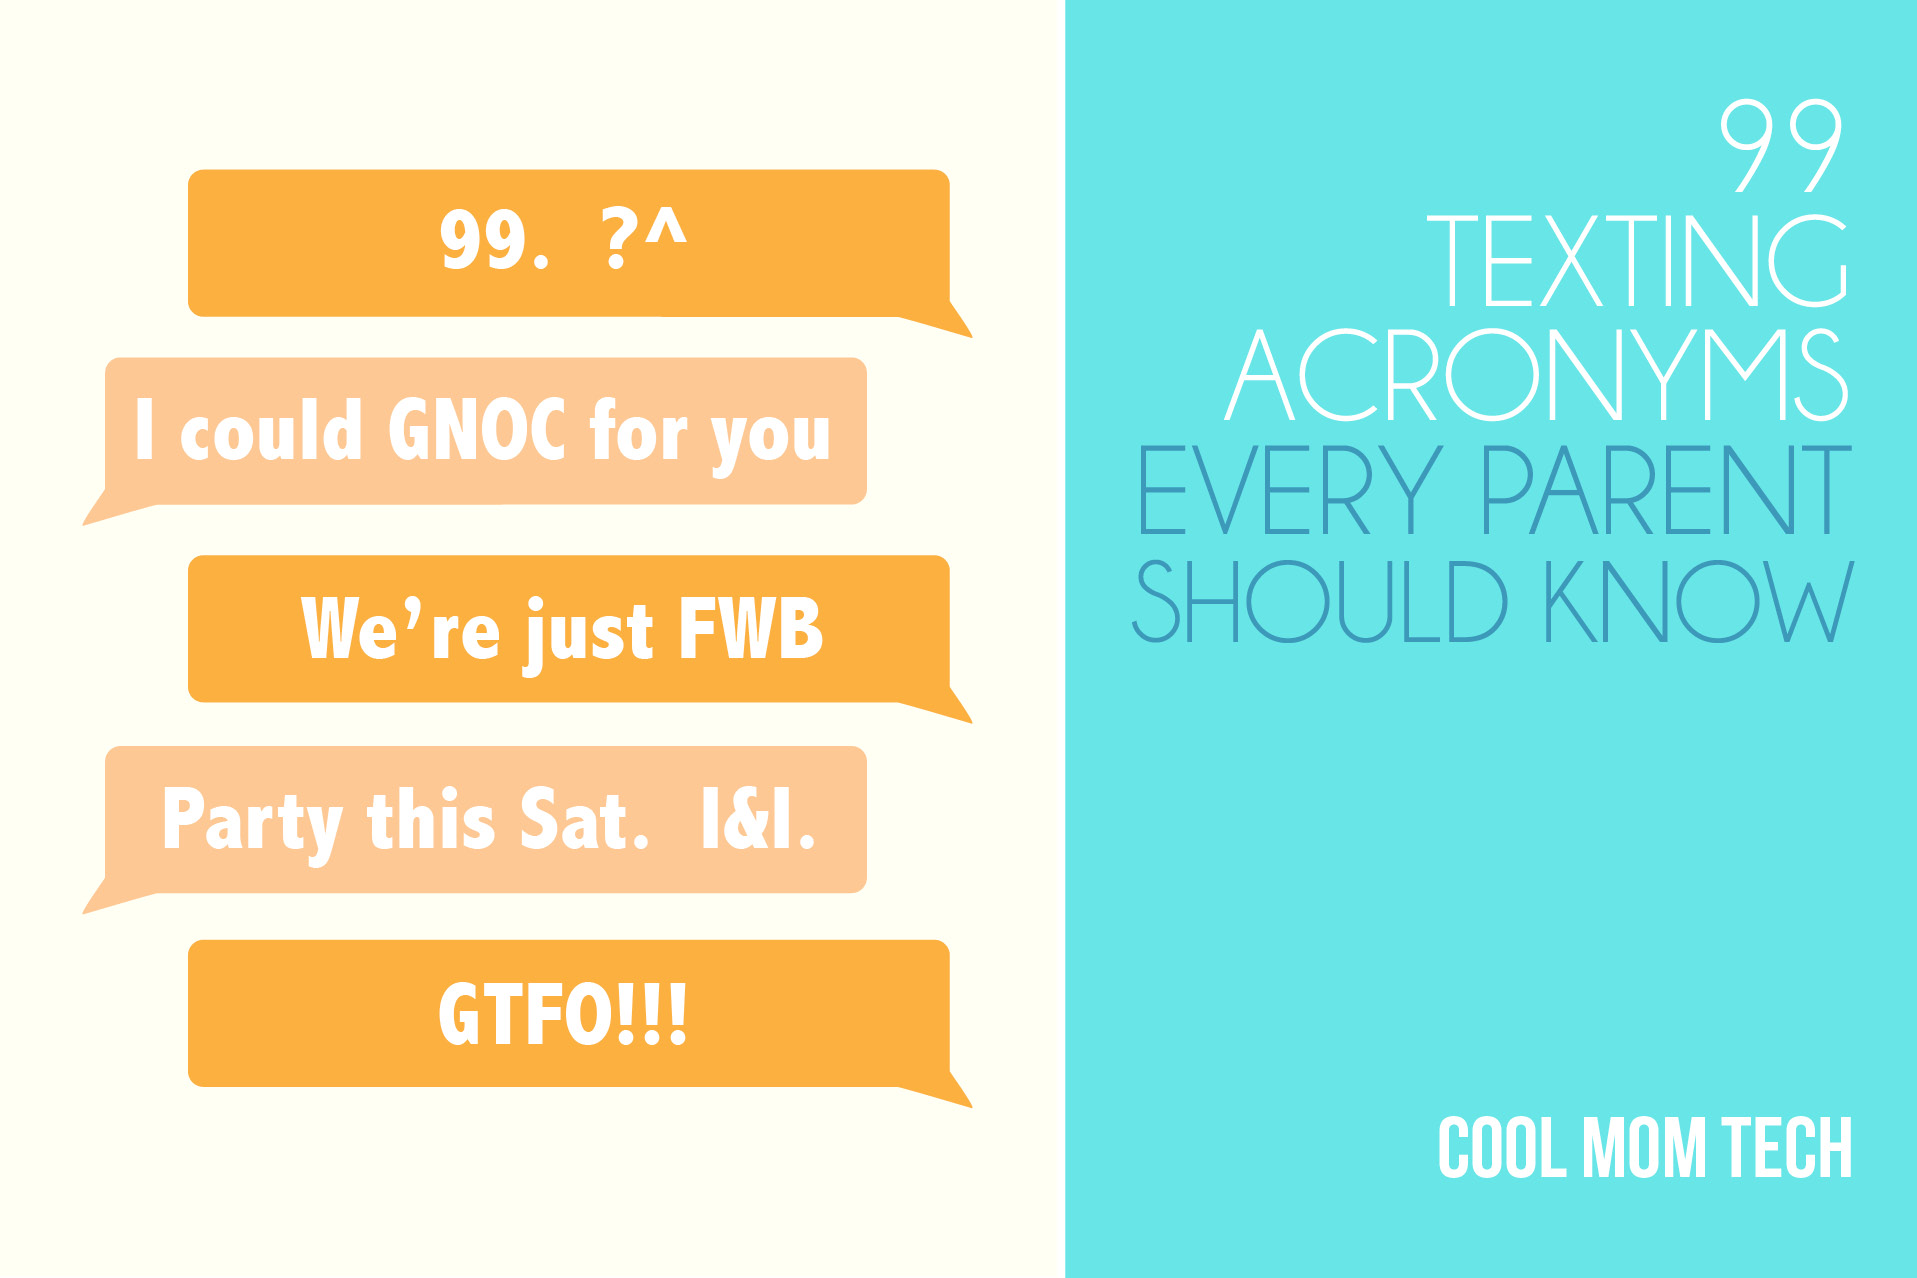 99 texting acronyms and phrases that every parent should know